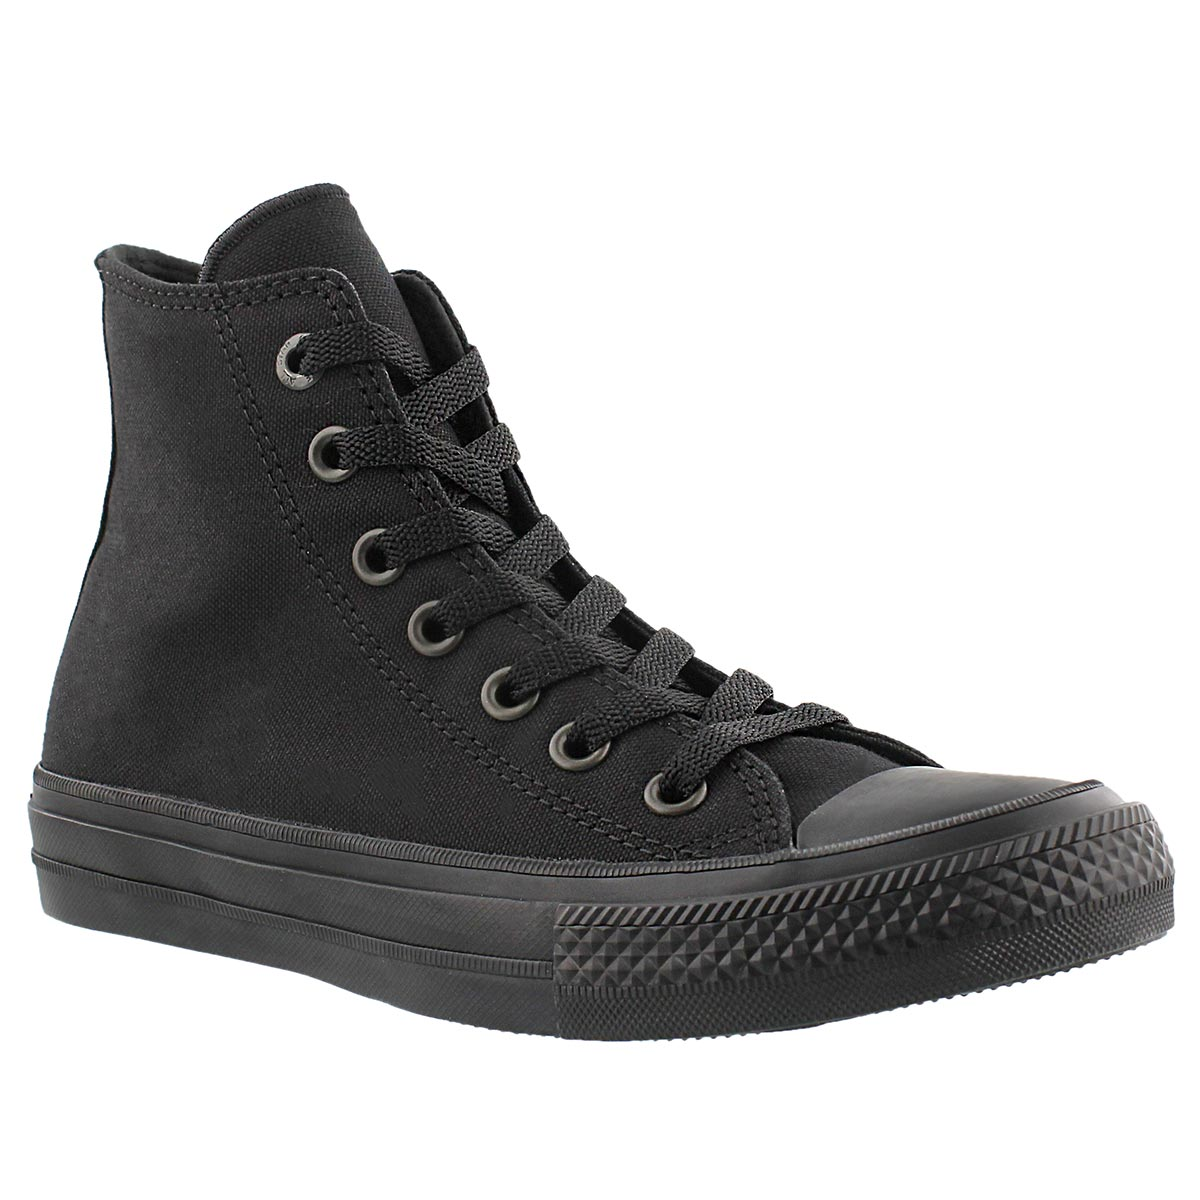 Women's CHUCK II VIZ FLOW black mono hi tops